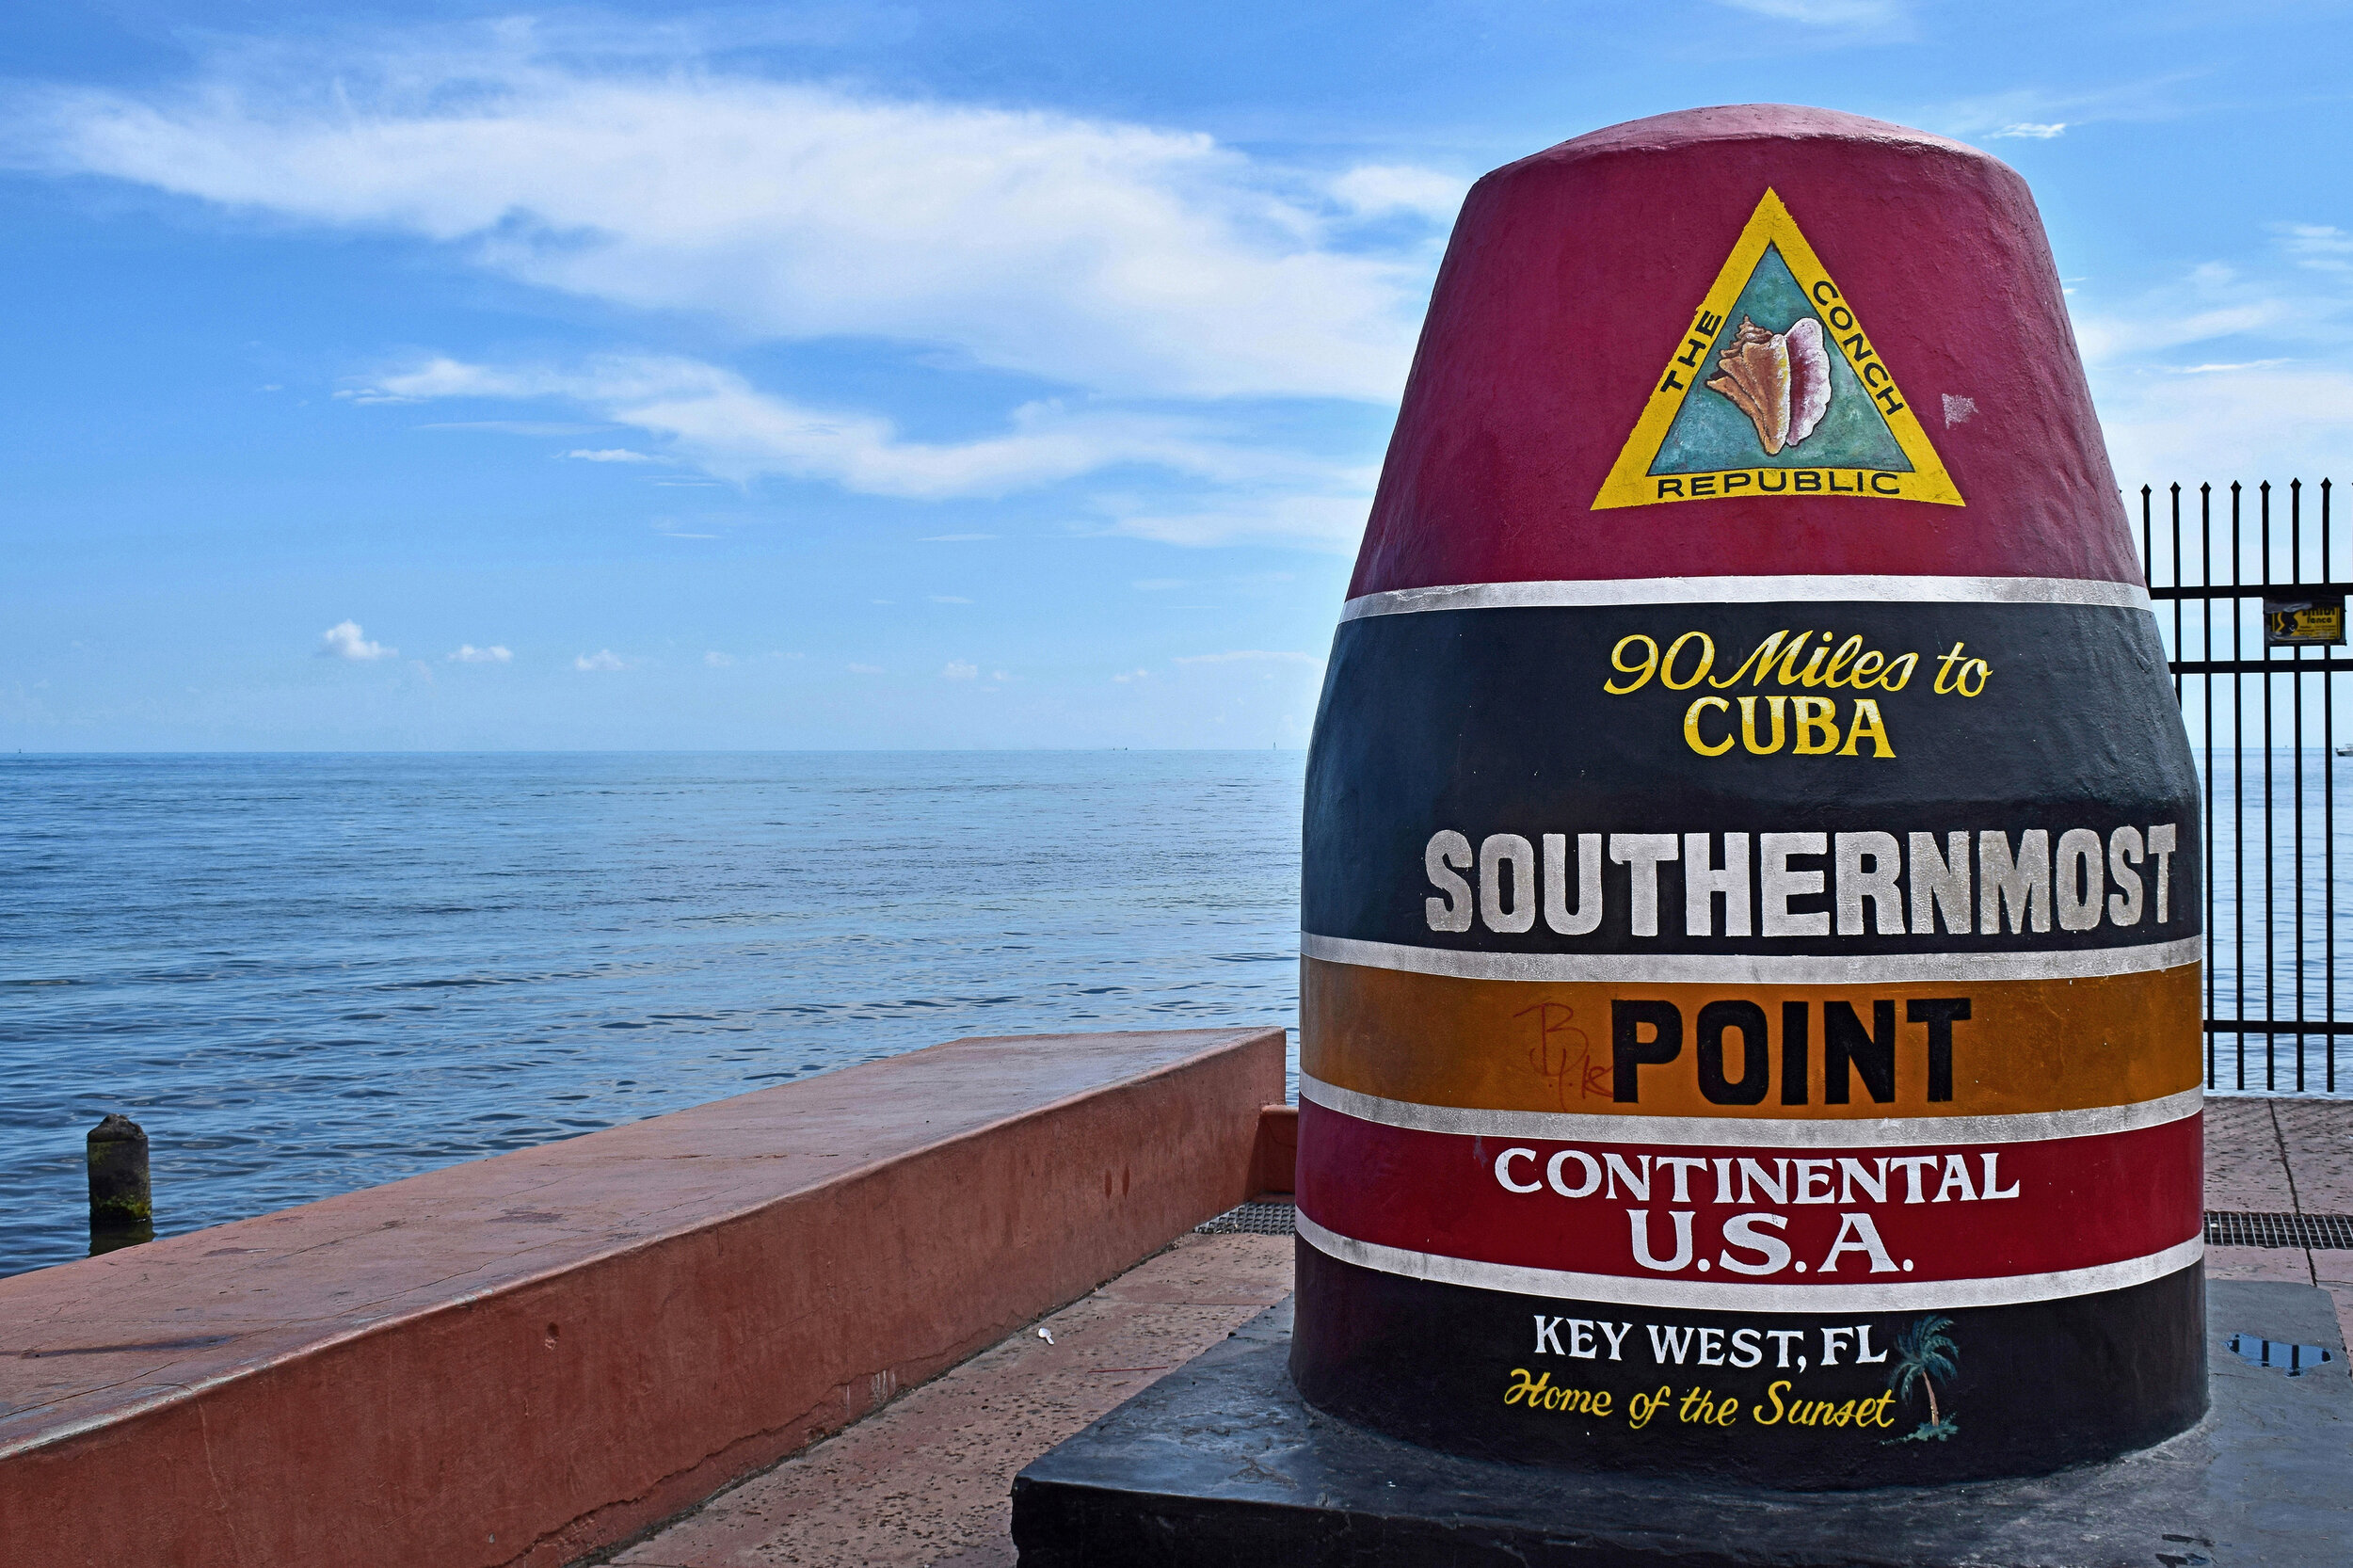 Southernmost_Point_an_der_Südküste_von_Key_West.jpg